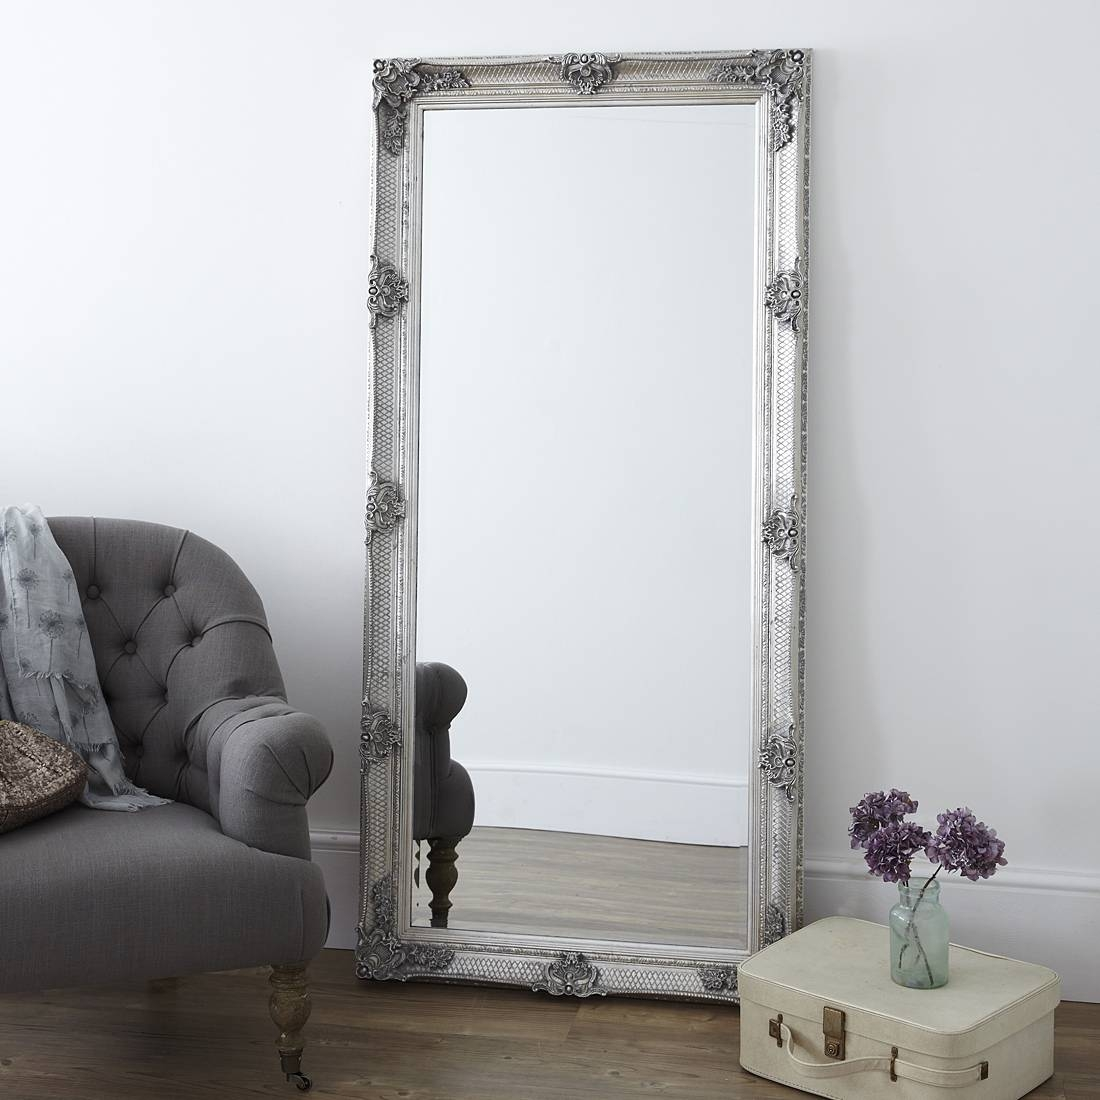 Full Length Floor Mirror Primrose Plum Decorative Antique intended for Antique Floor Length Mirrors (Image 5 of 15)